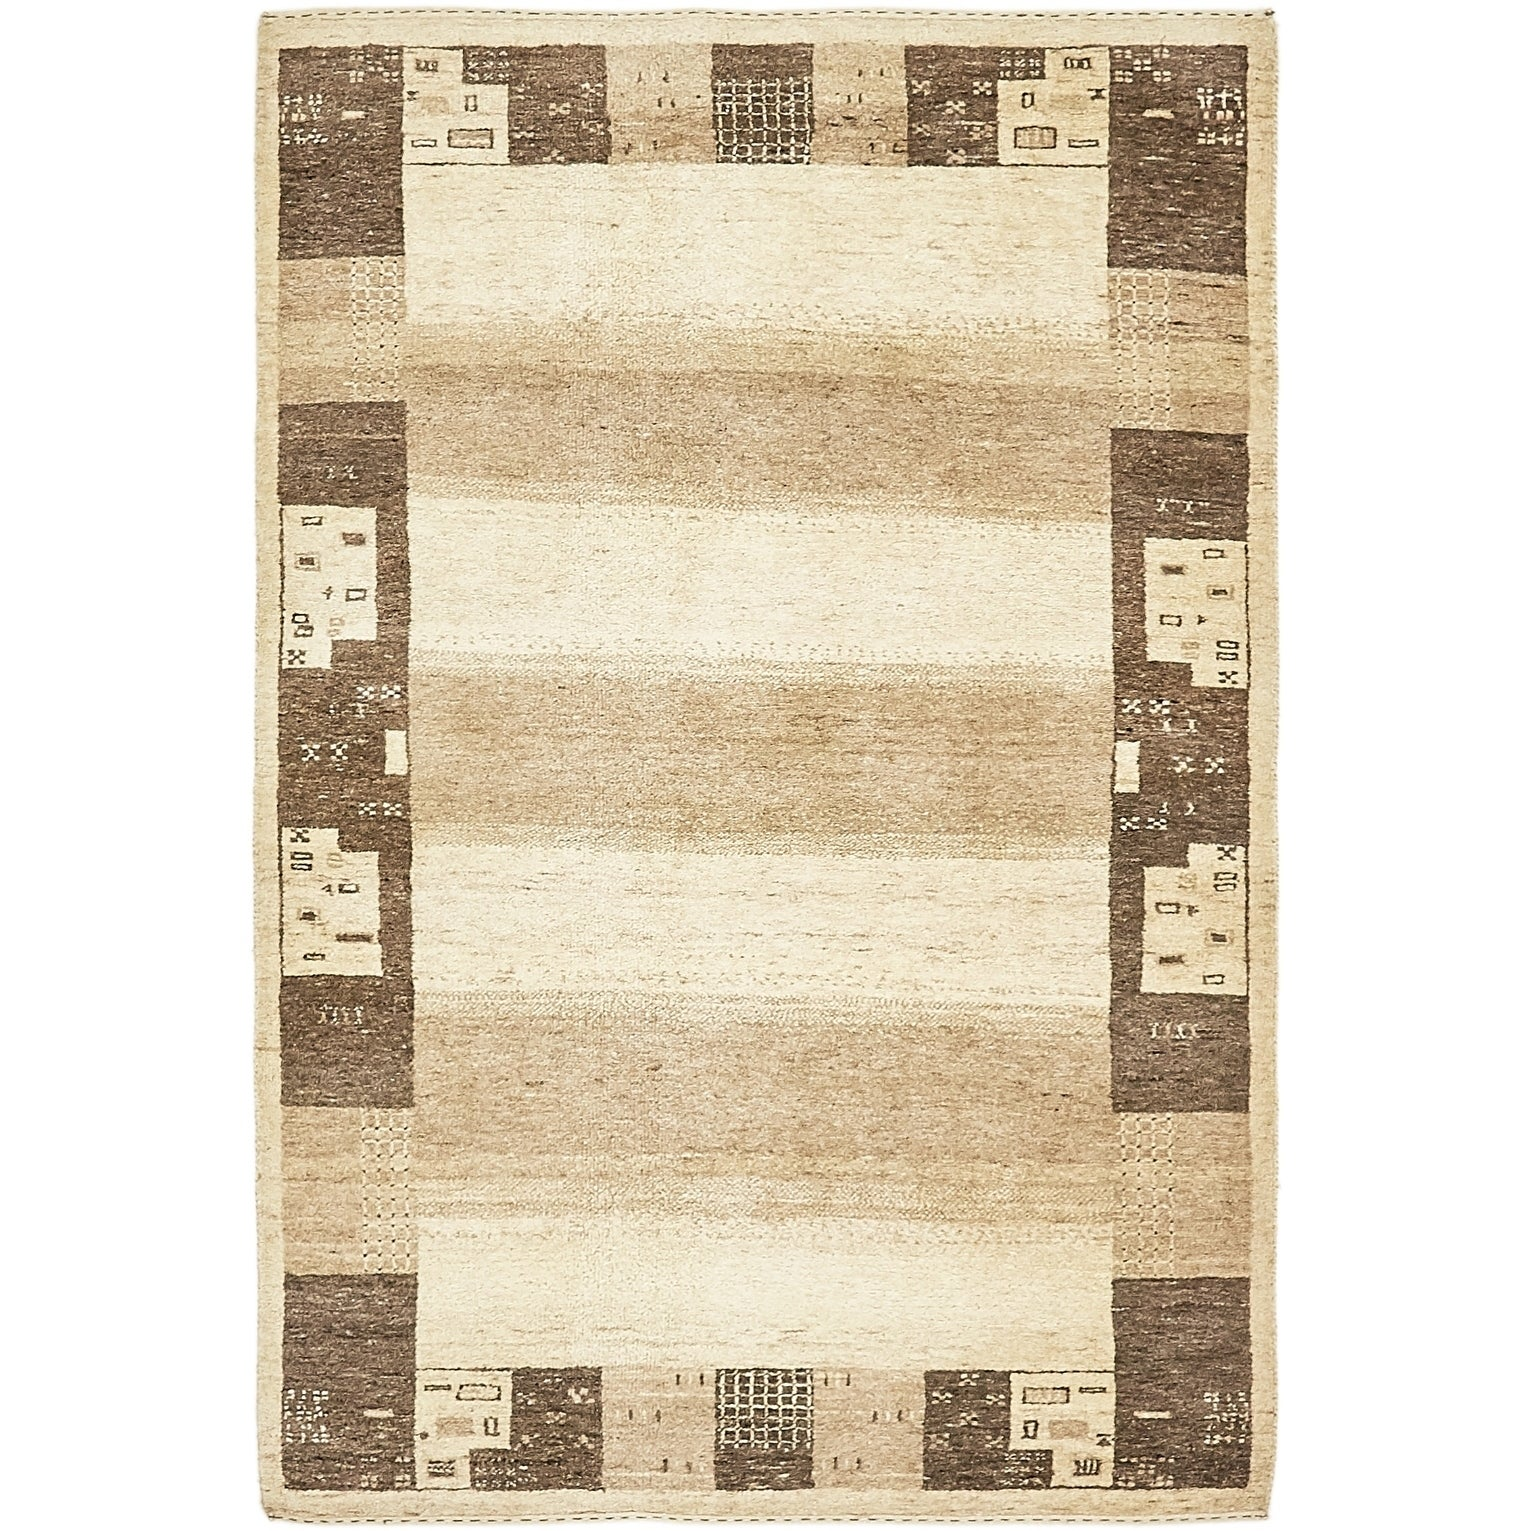 Hand Knotted Kashkuli Gabbeh Wool Area Rug - 4 x 5 9 (Cream - 4 x 5 9)